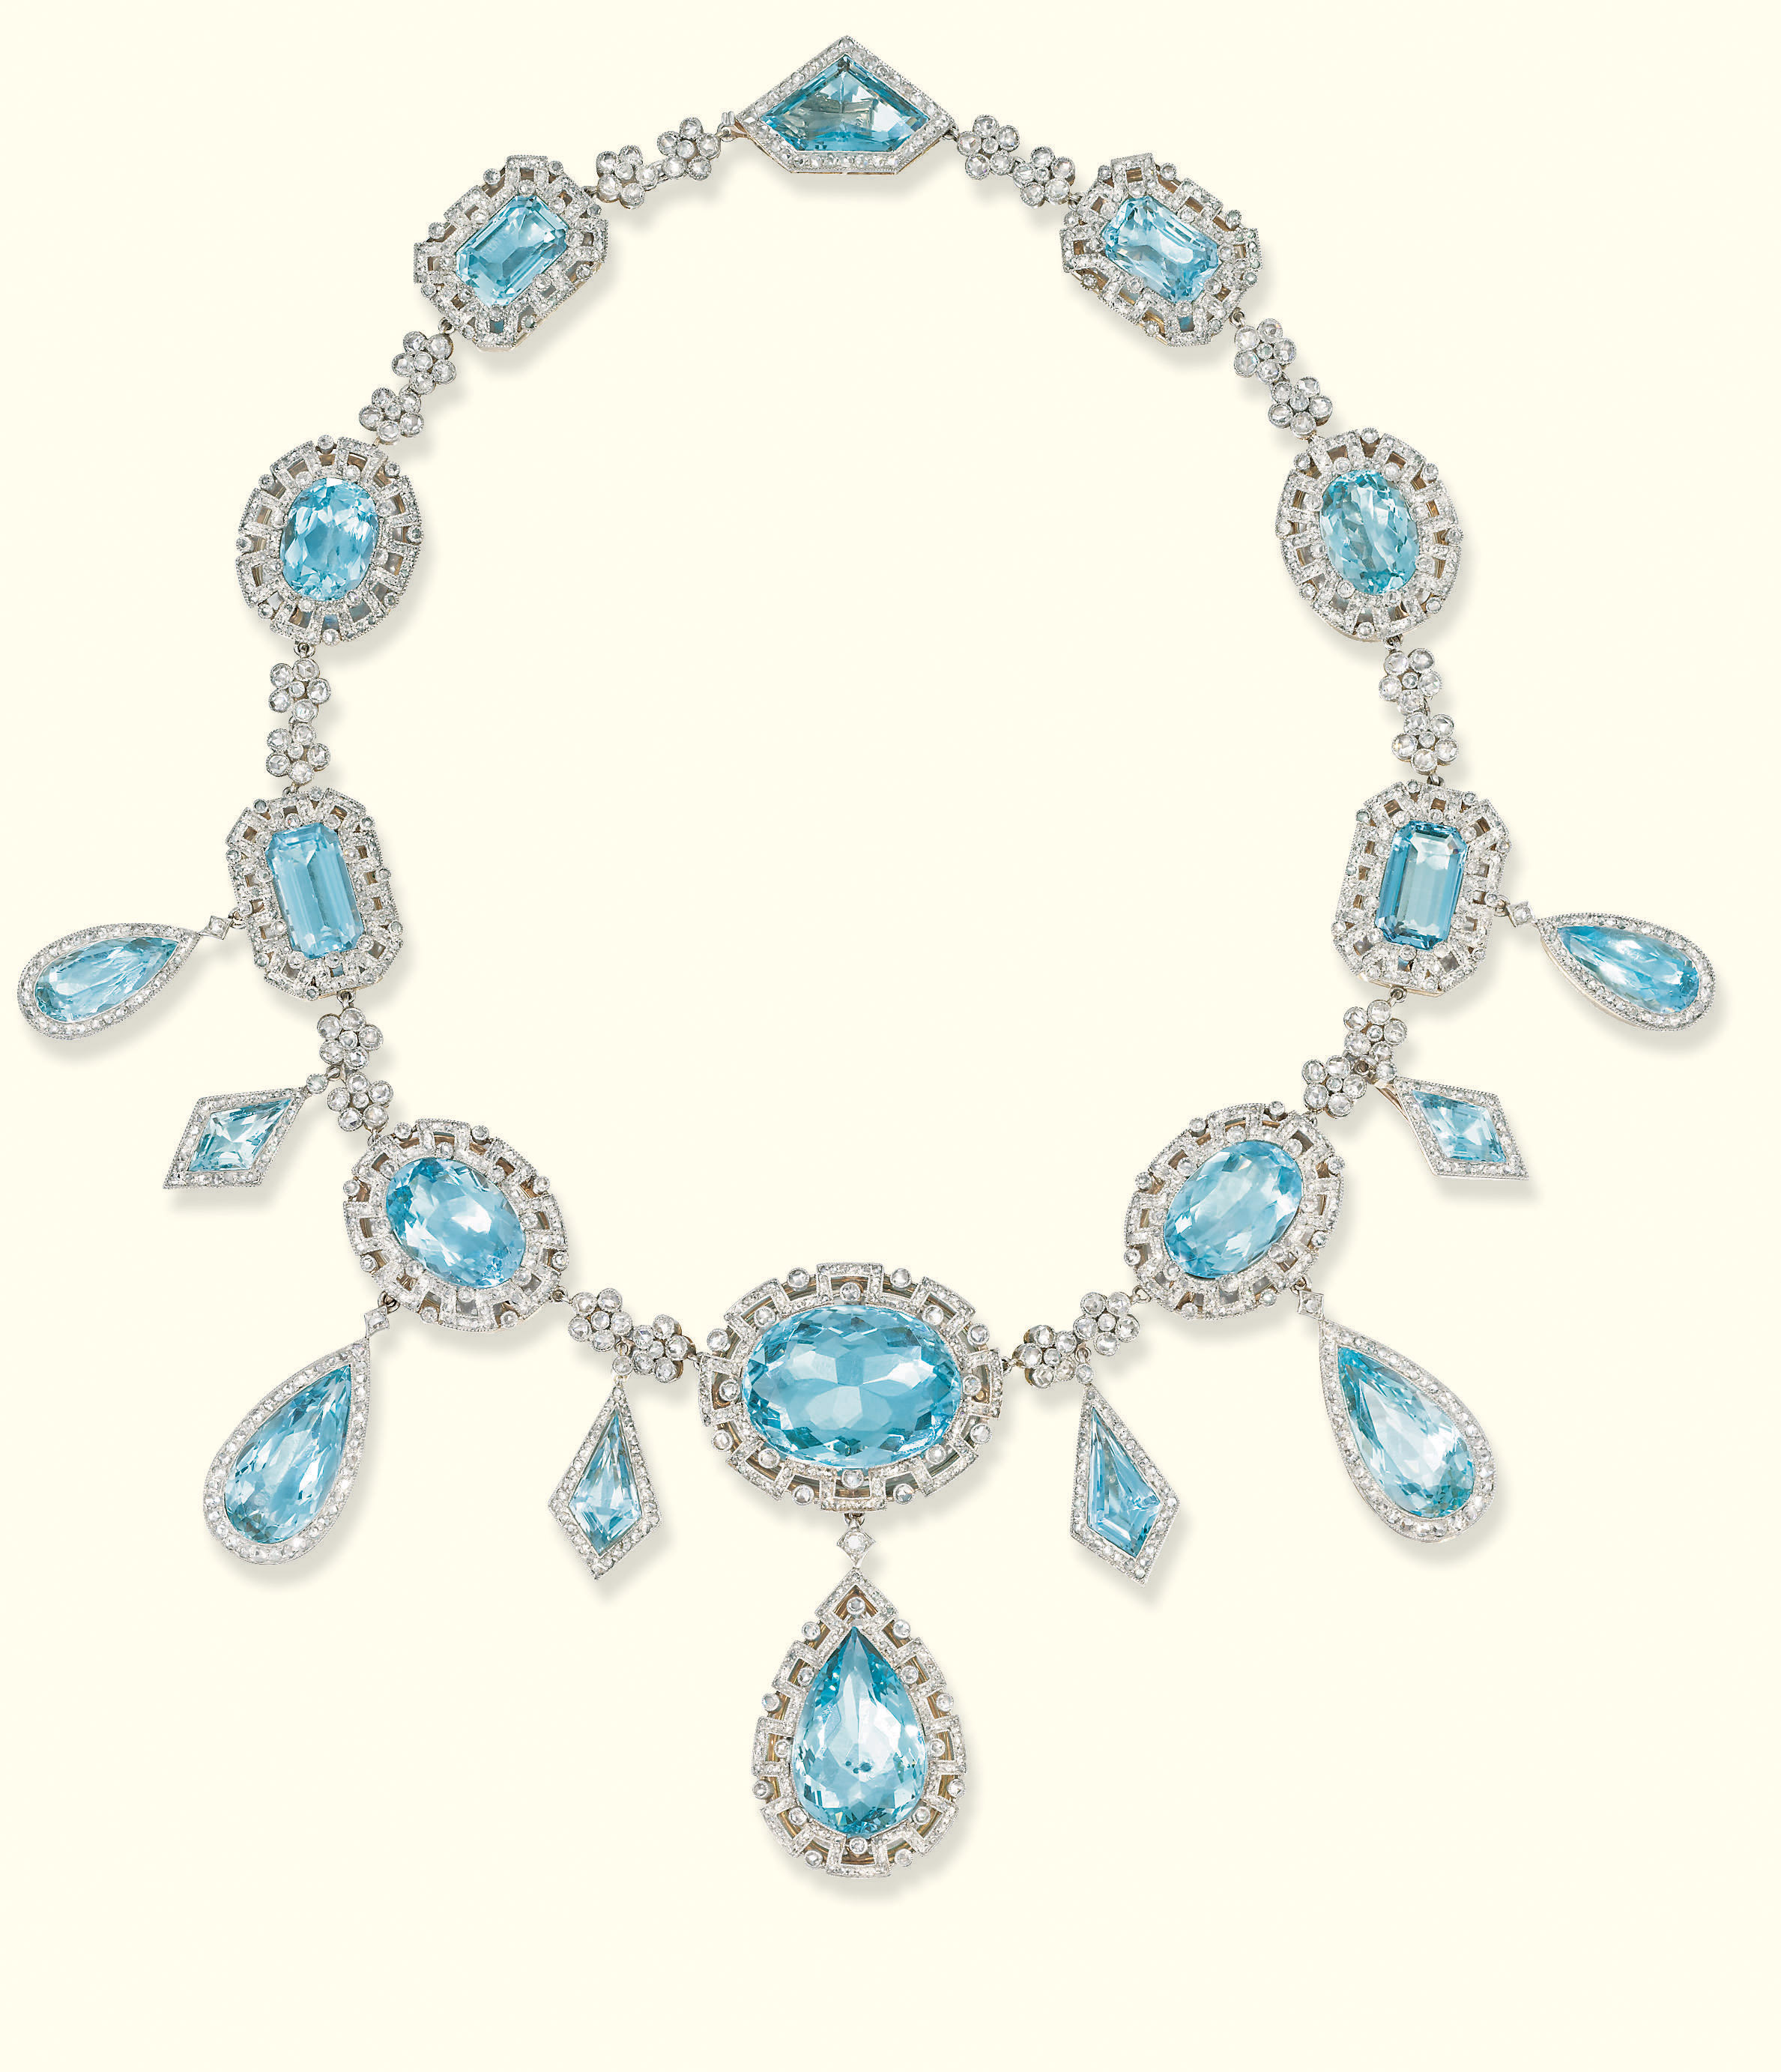 A FINE BELLE EPOQUE AQUAMARINE AND DIAMOND NECKLACE, BY KOCH